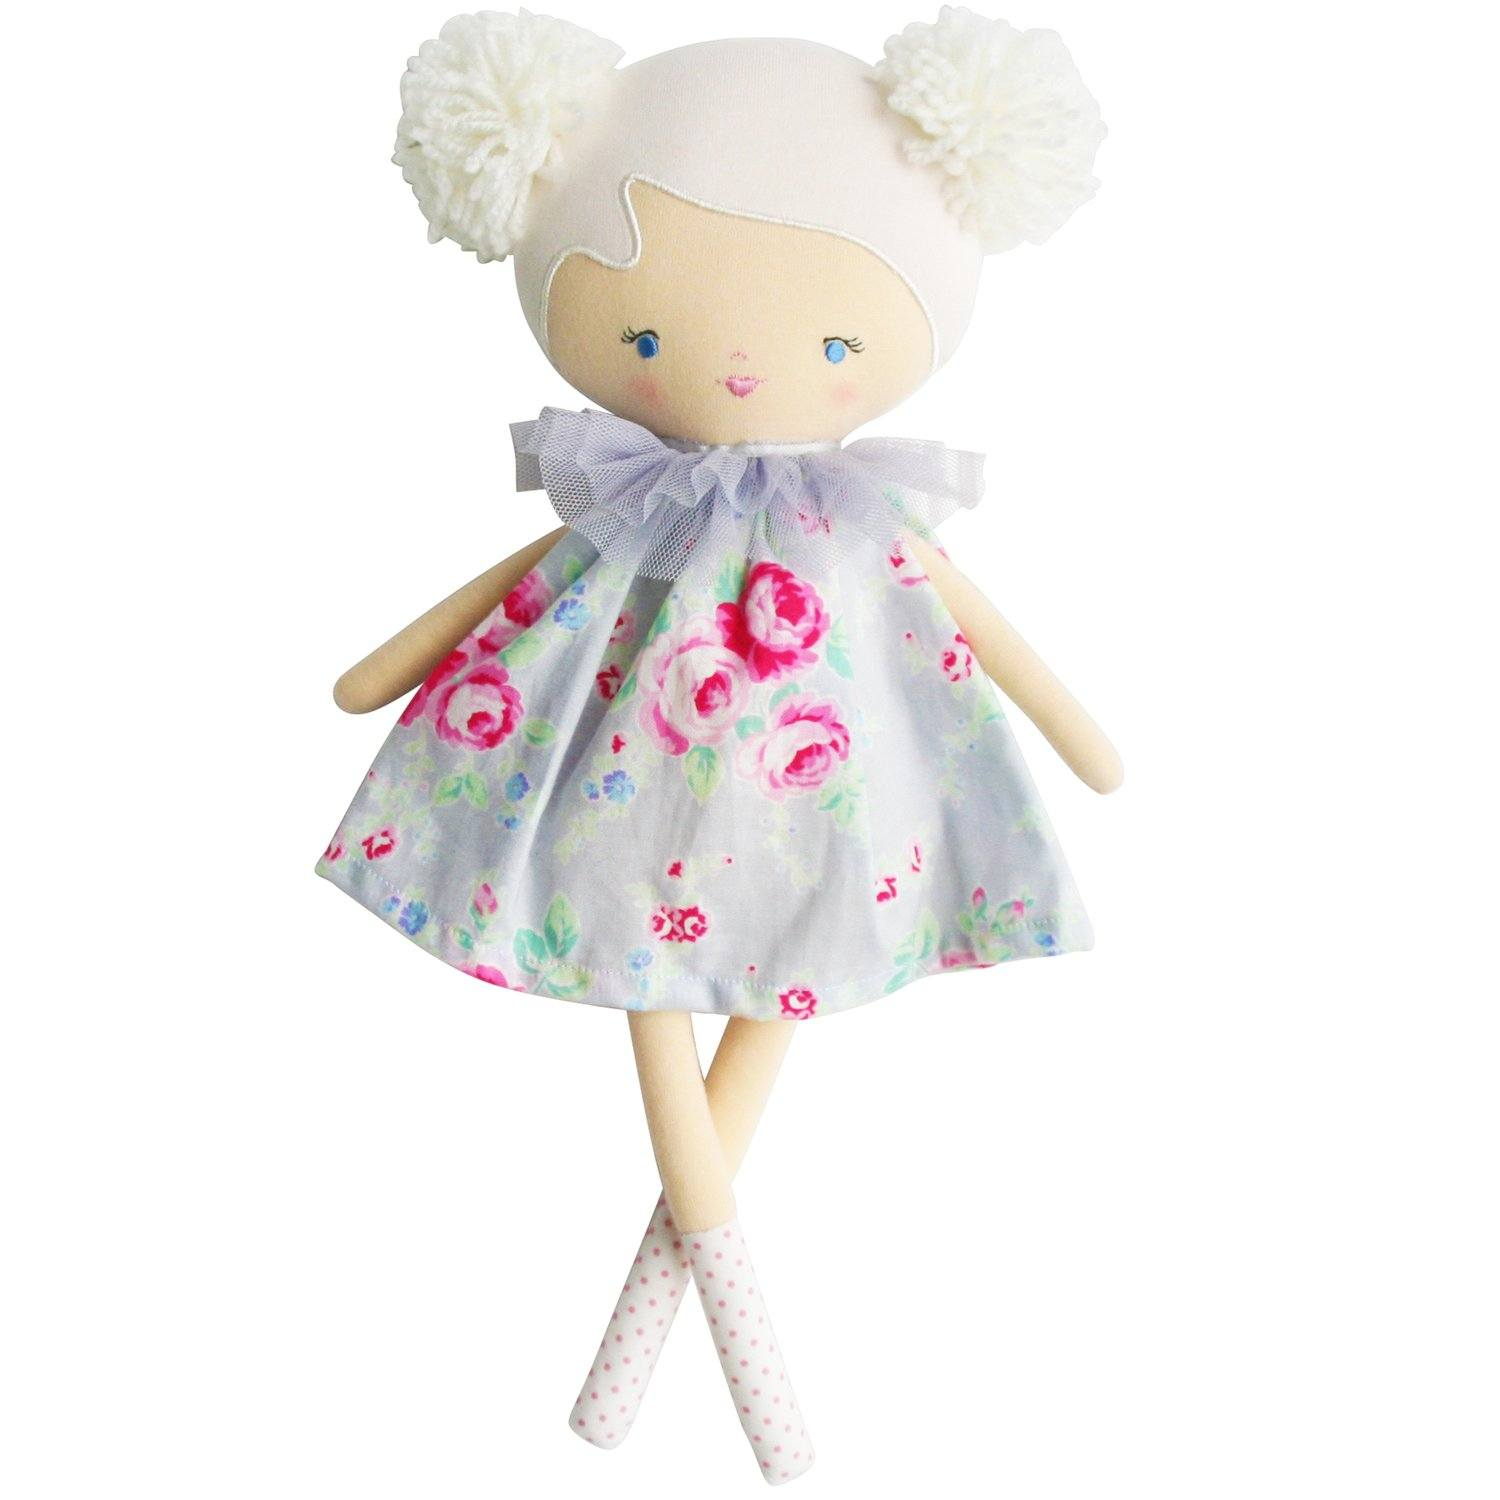 Baby Ellie Doll (Silver Floral)